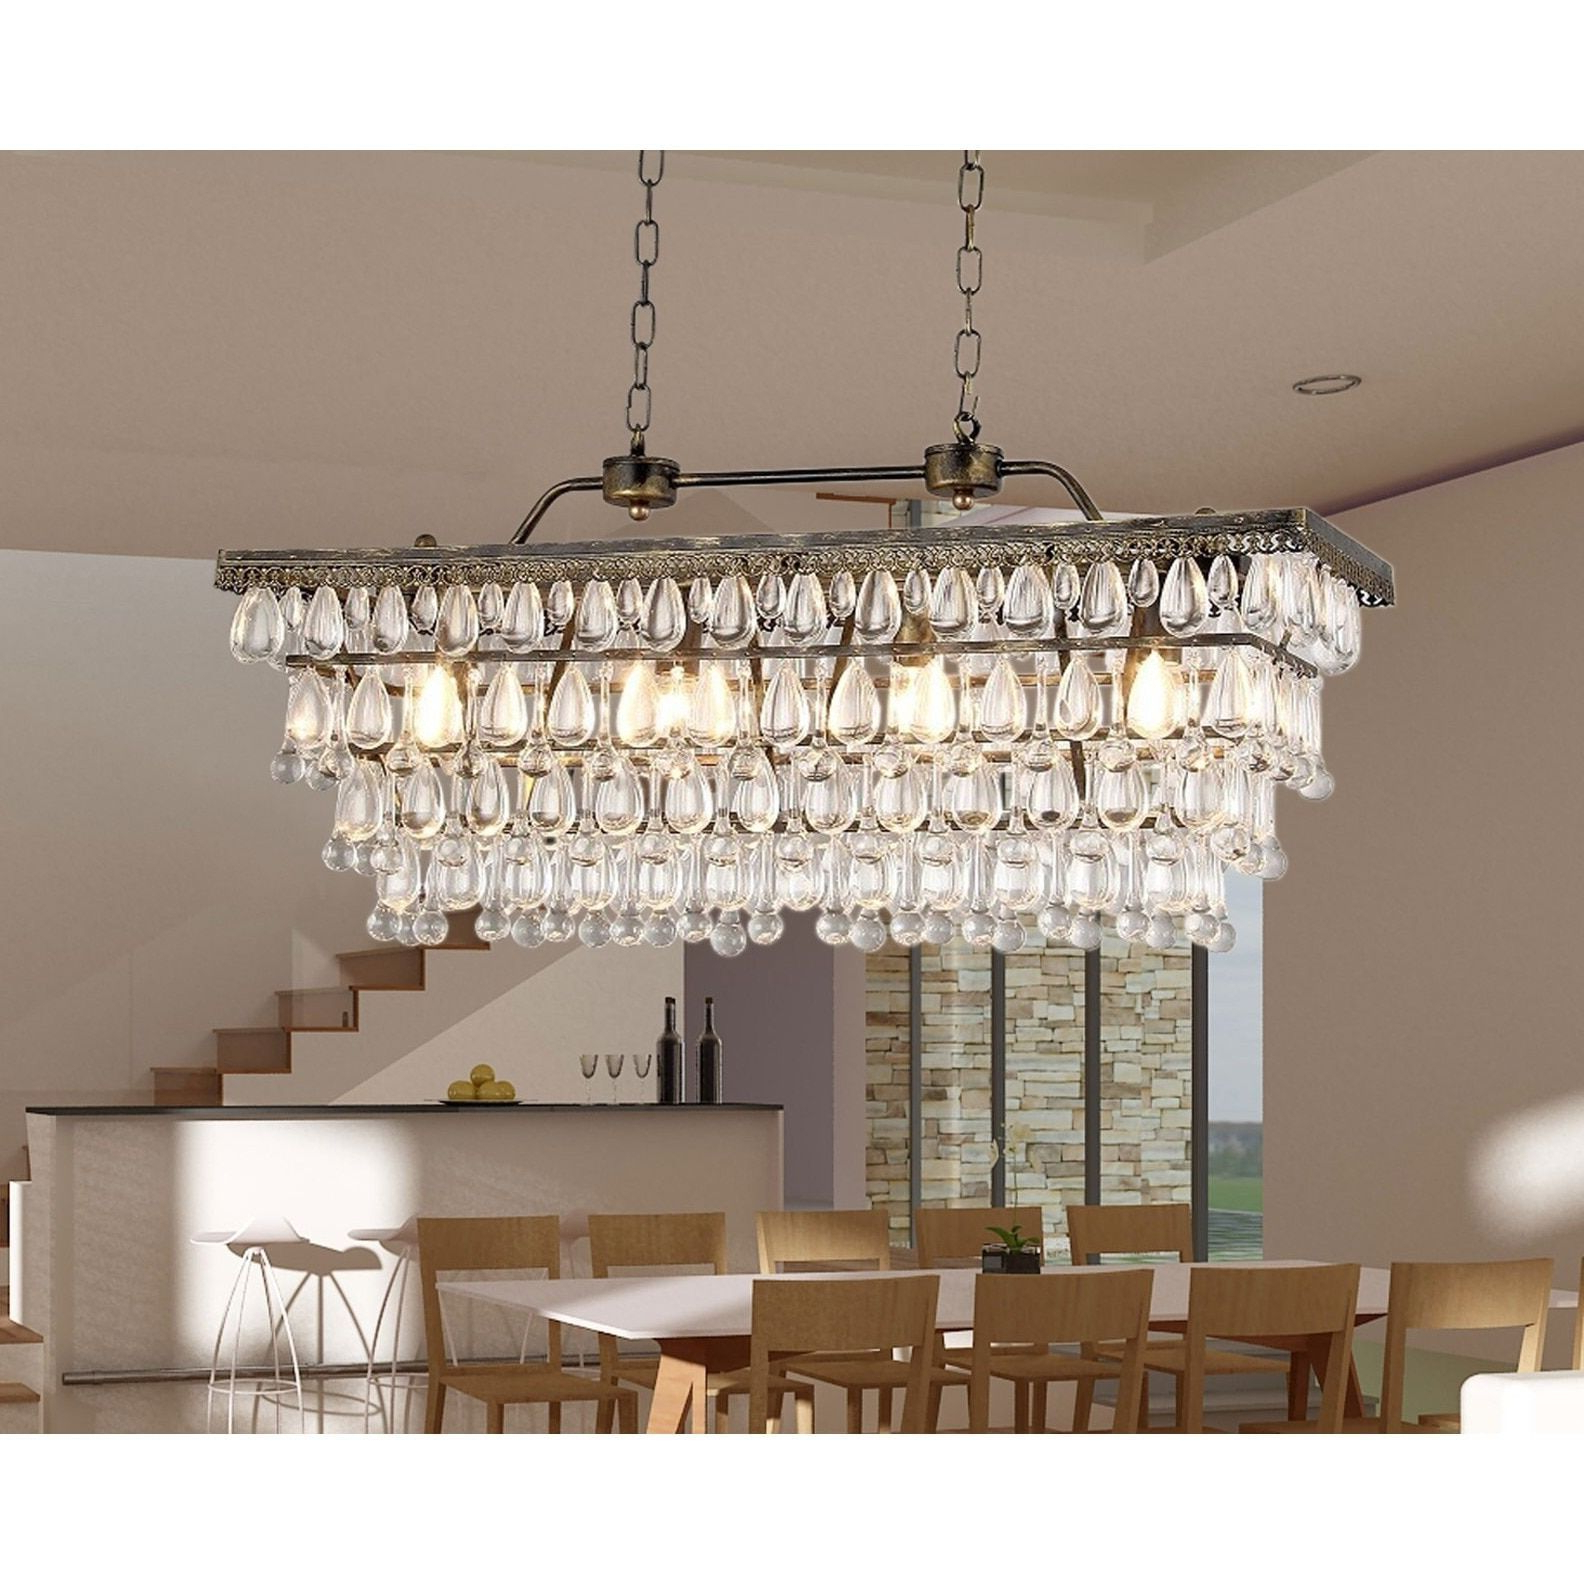 2019 Huskar Bronze 4 Light Pendant With Crystal Shade – Artofit Intended For Verdell 5 Light Crystal Chandeliers (View 4 of 25)